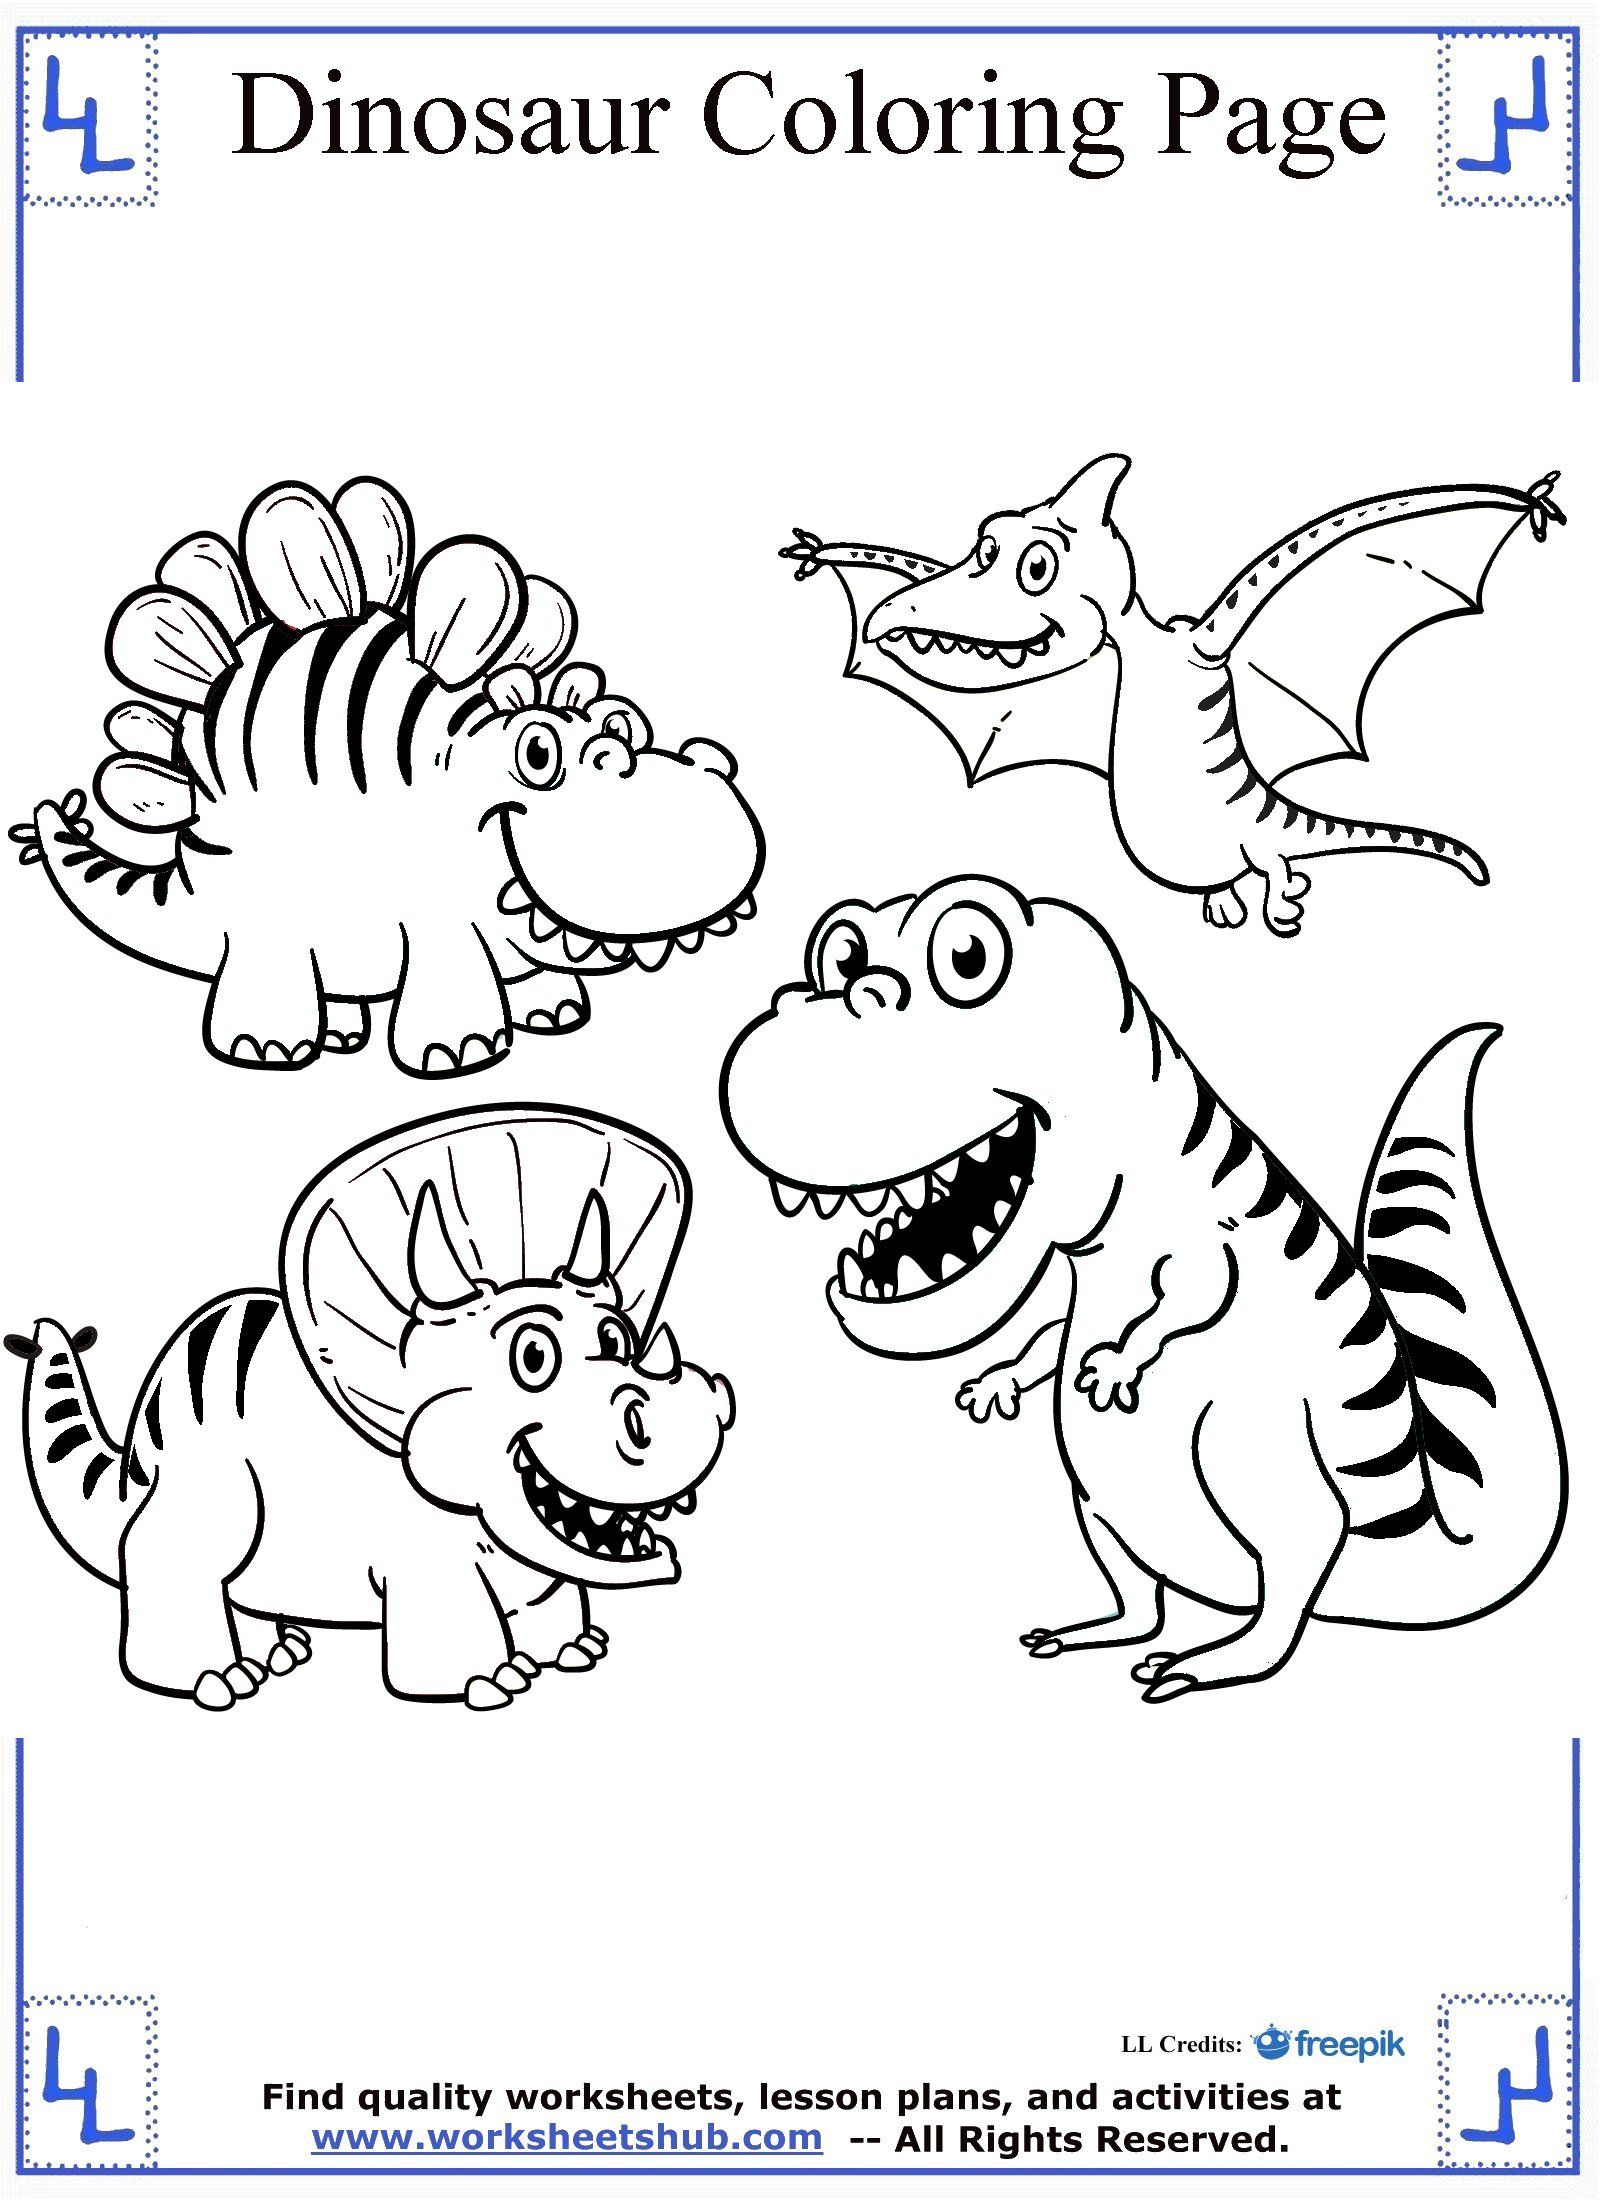 Dinosaur Coloring Pages Dinosaur Coloring Pages Dinosaur Coloring